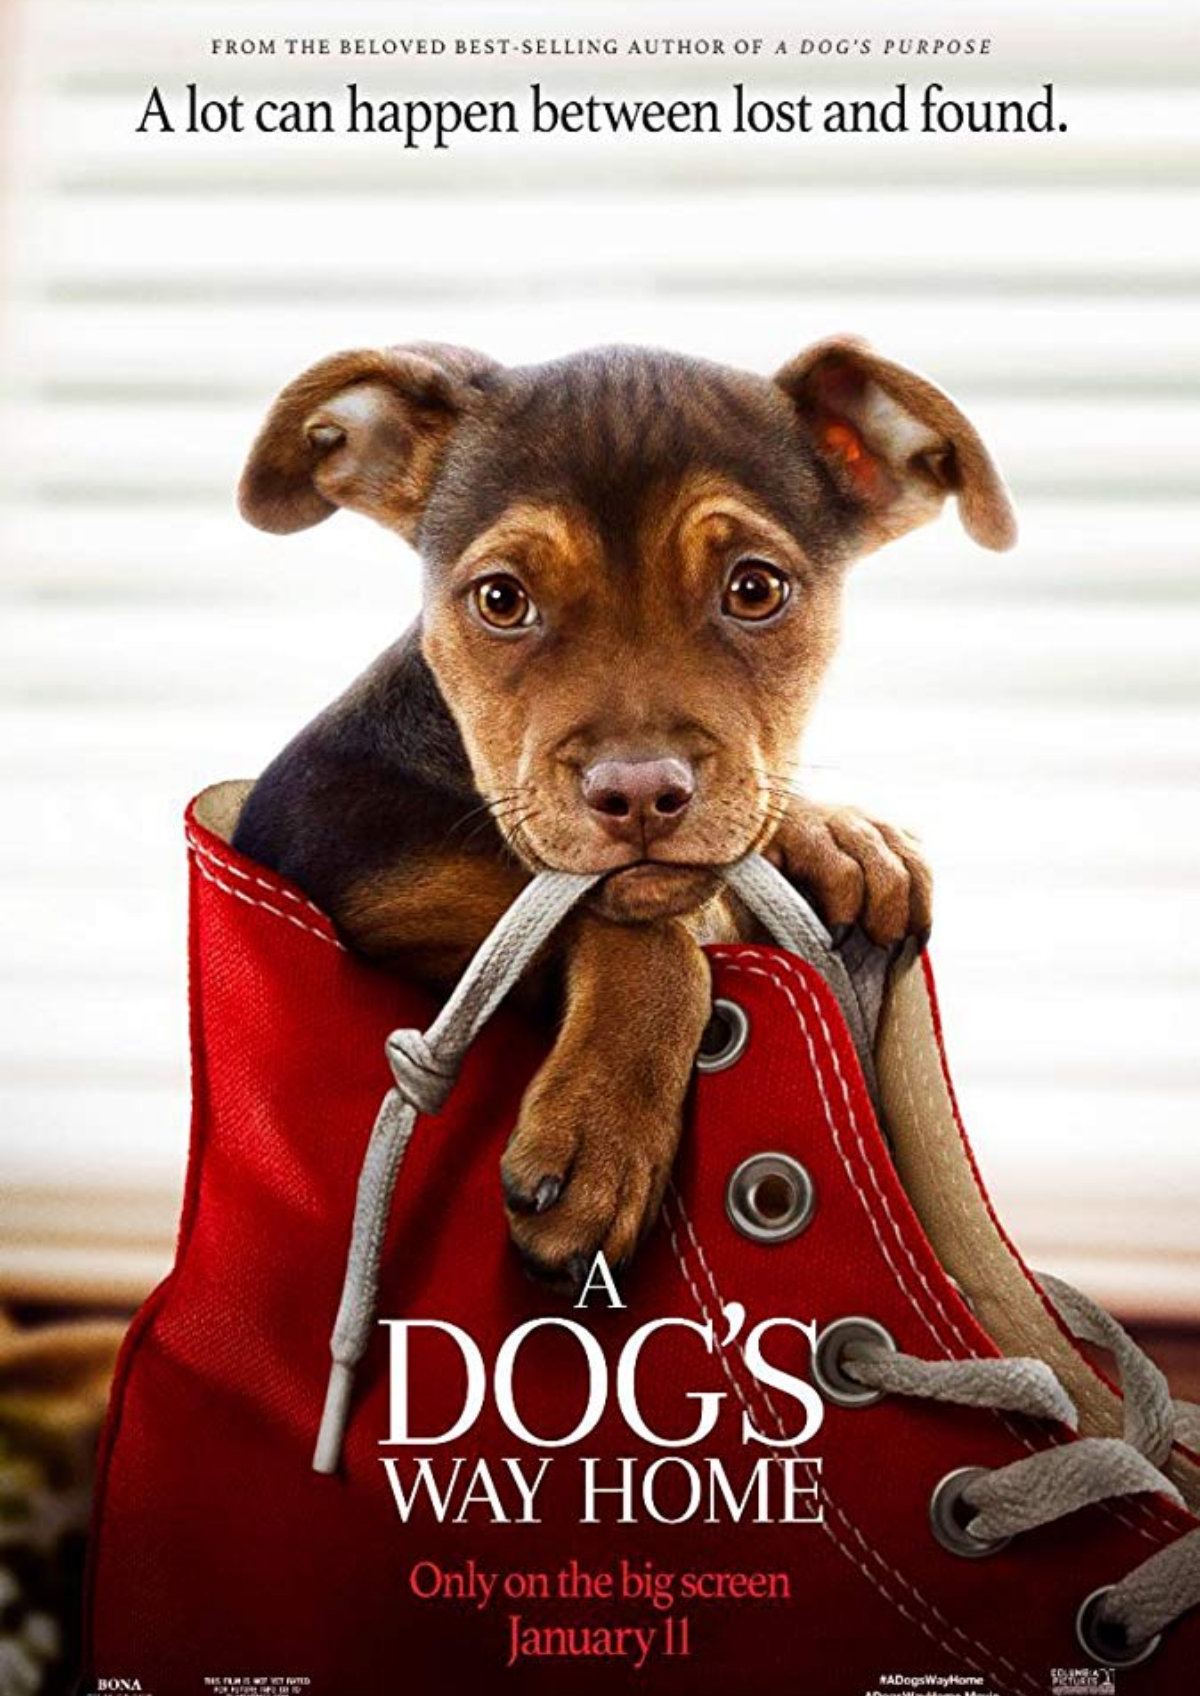 'A Dog's Way Home' movie poster